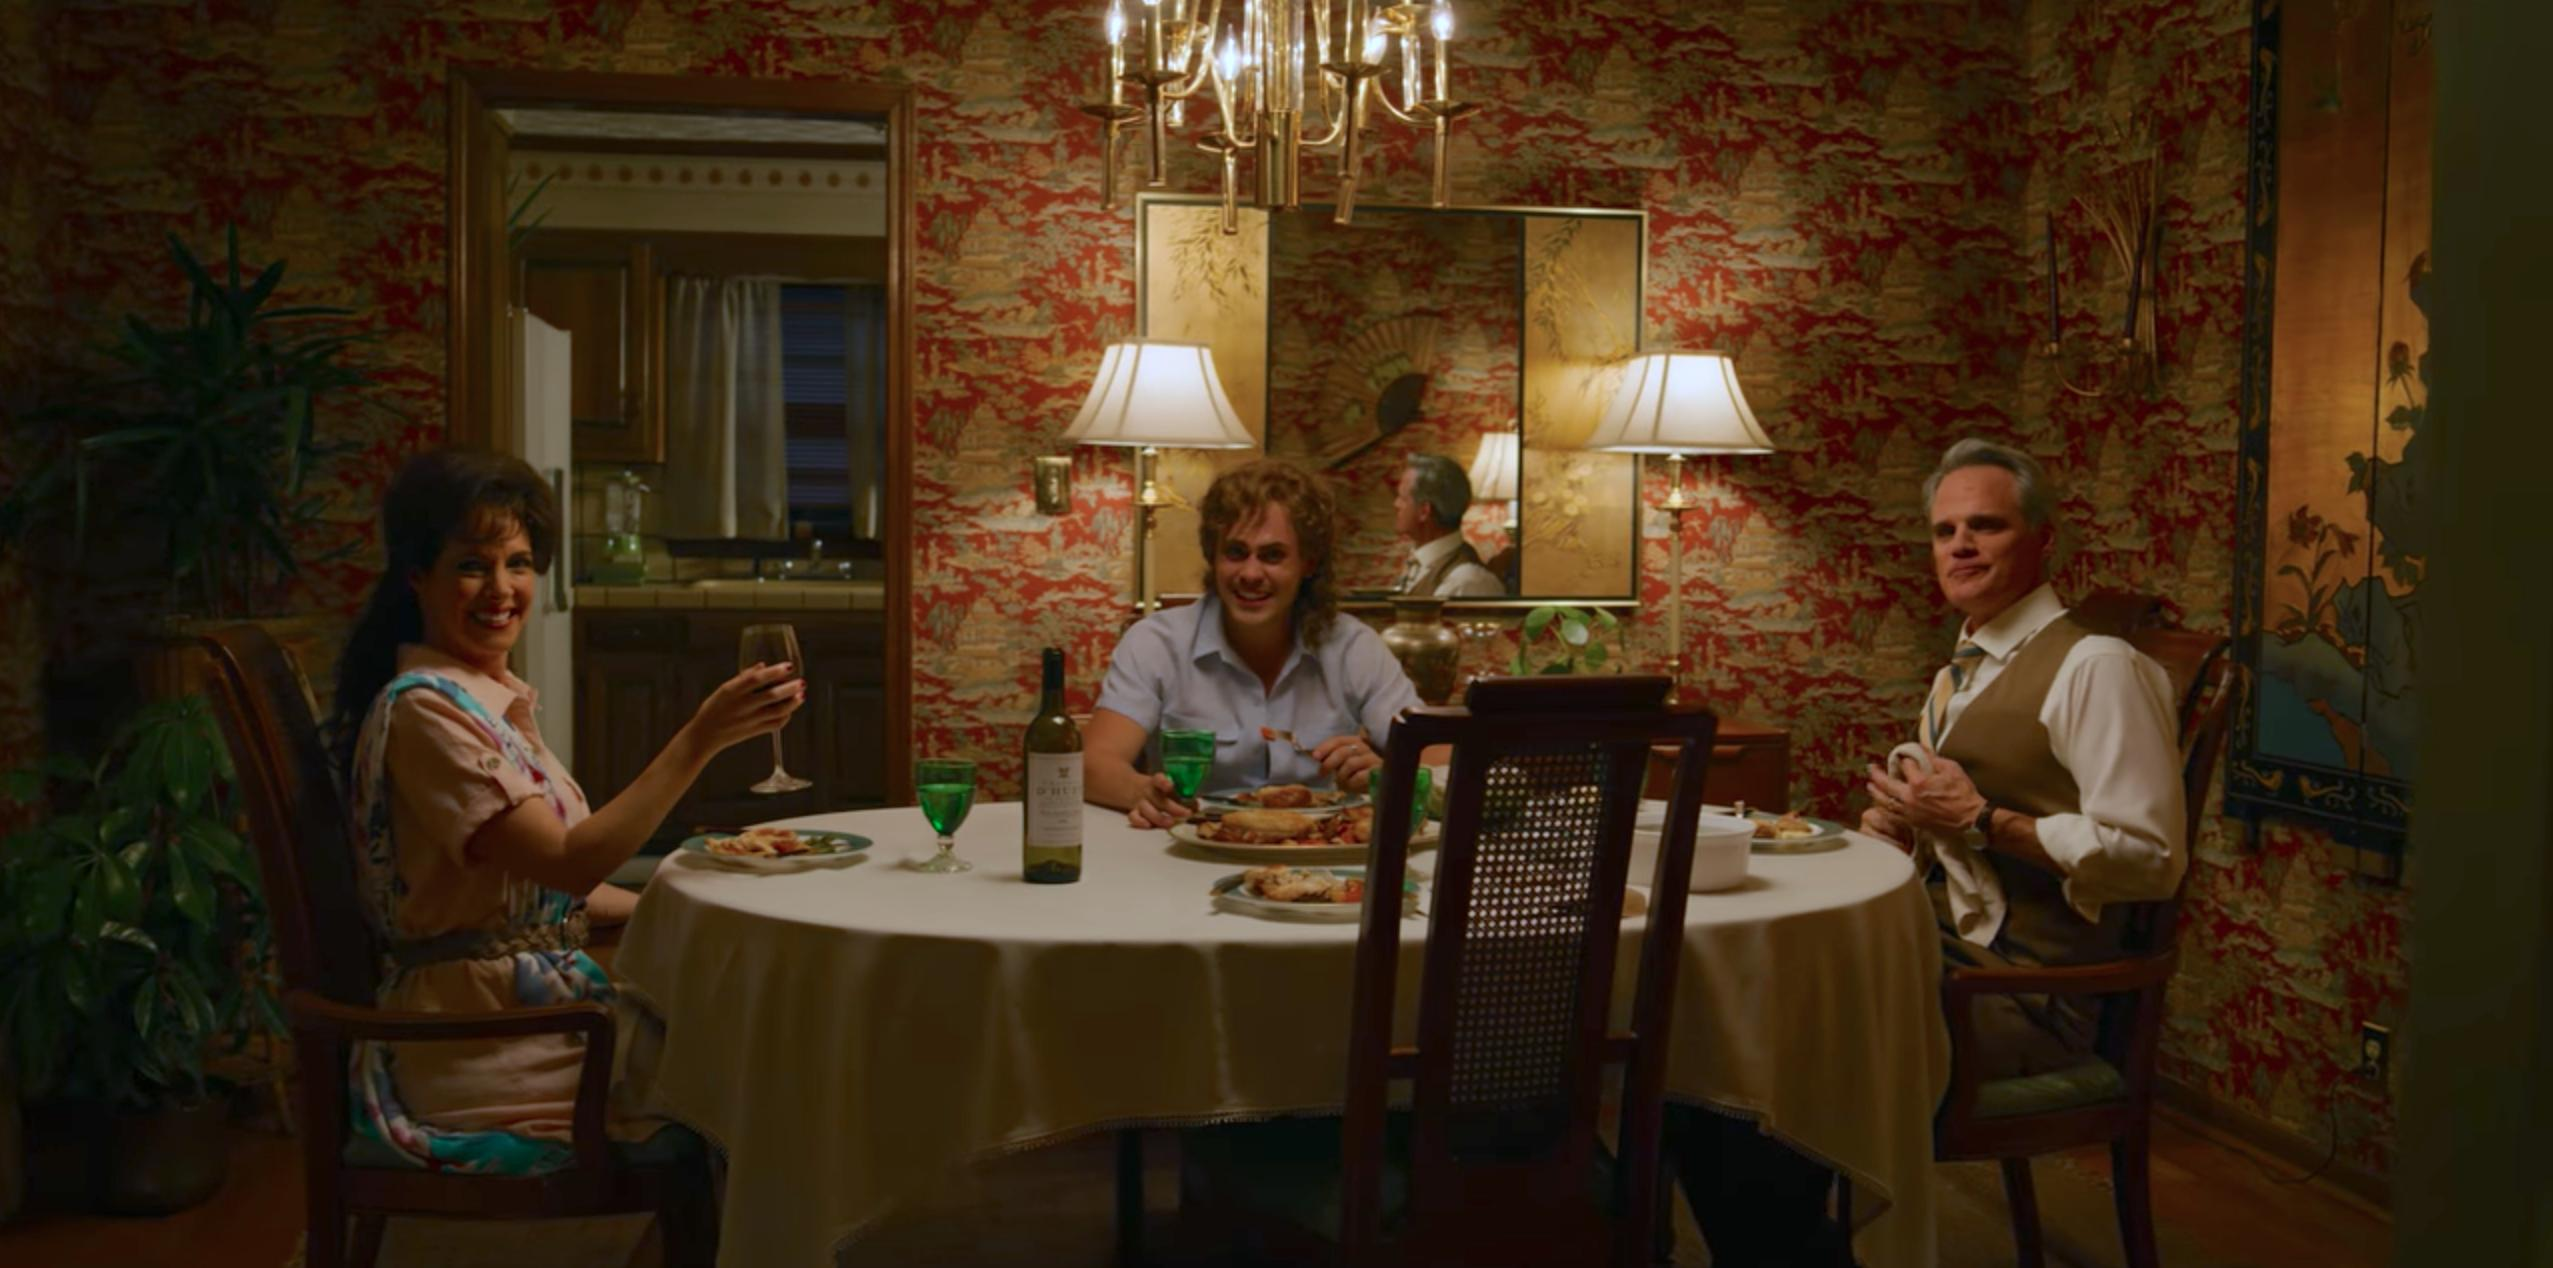 Michael Park, Dacre Montgomery, and Holly A. Morris in Stranger Things (2016)